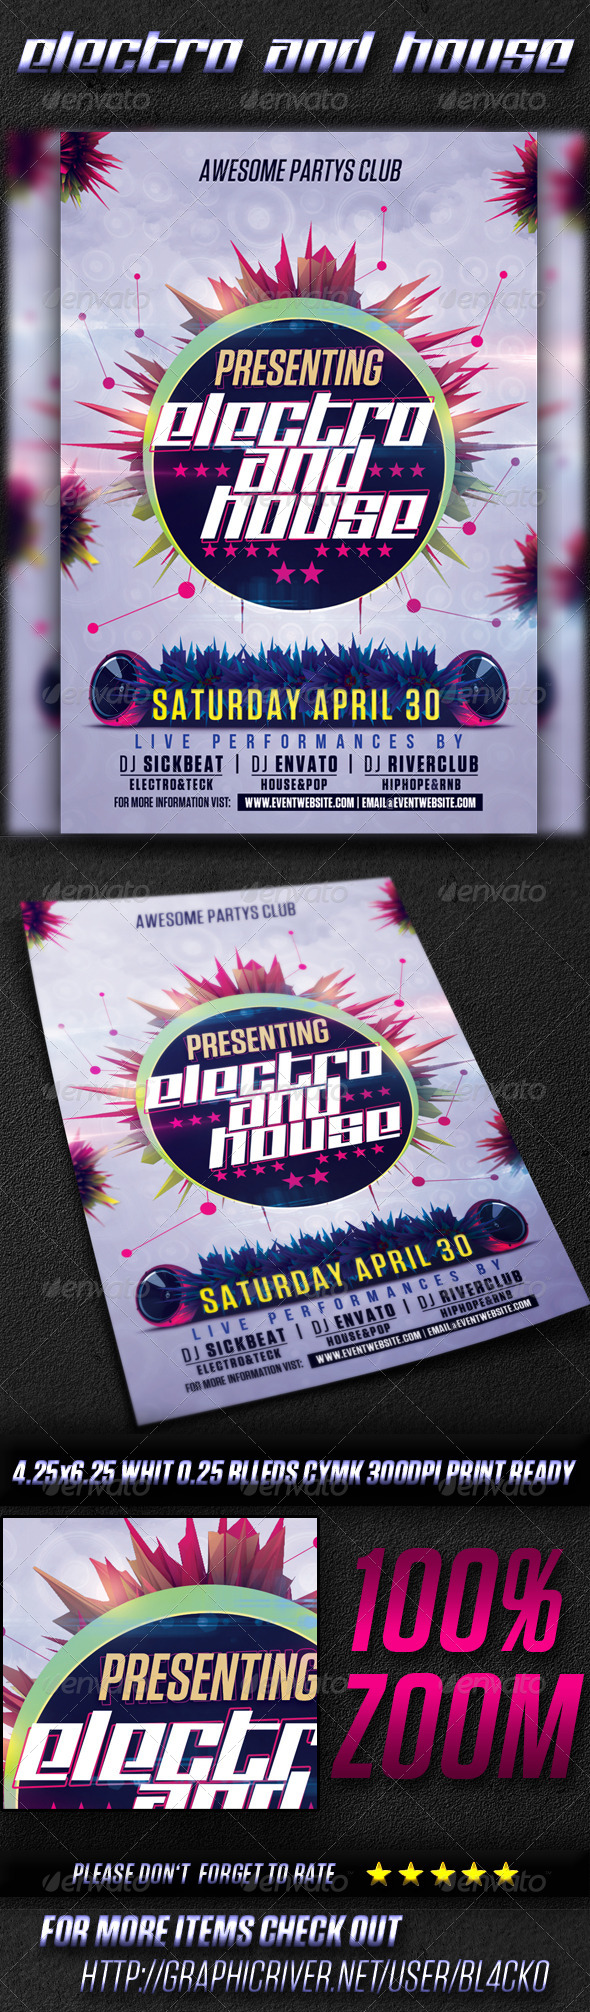 GraphicRiver Electro And House Party Vol3 4527342